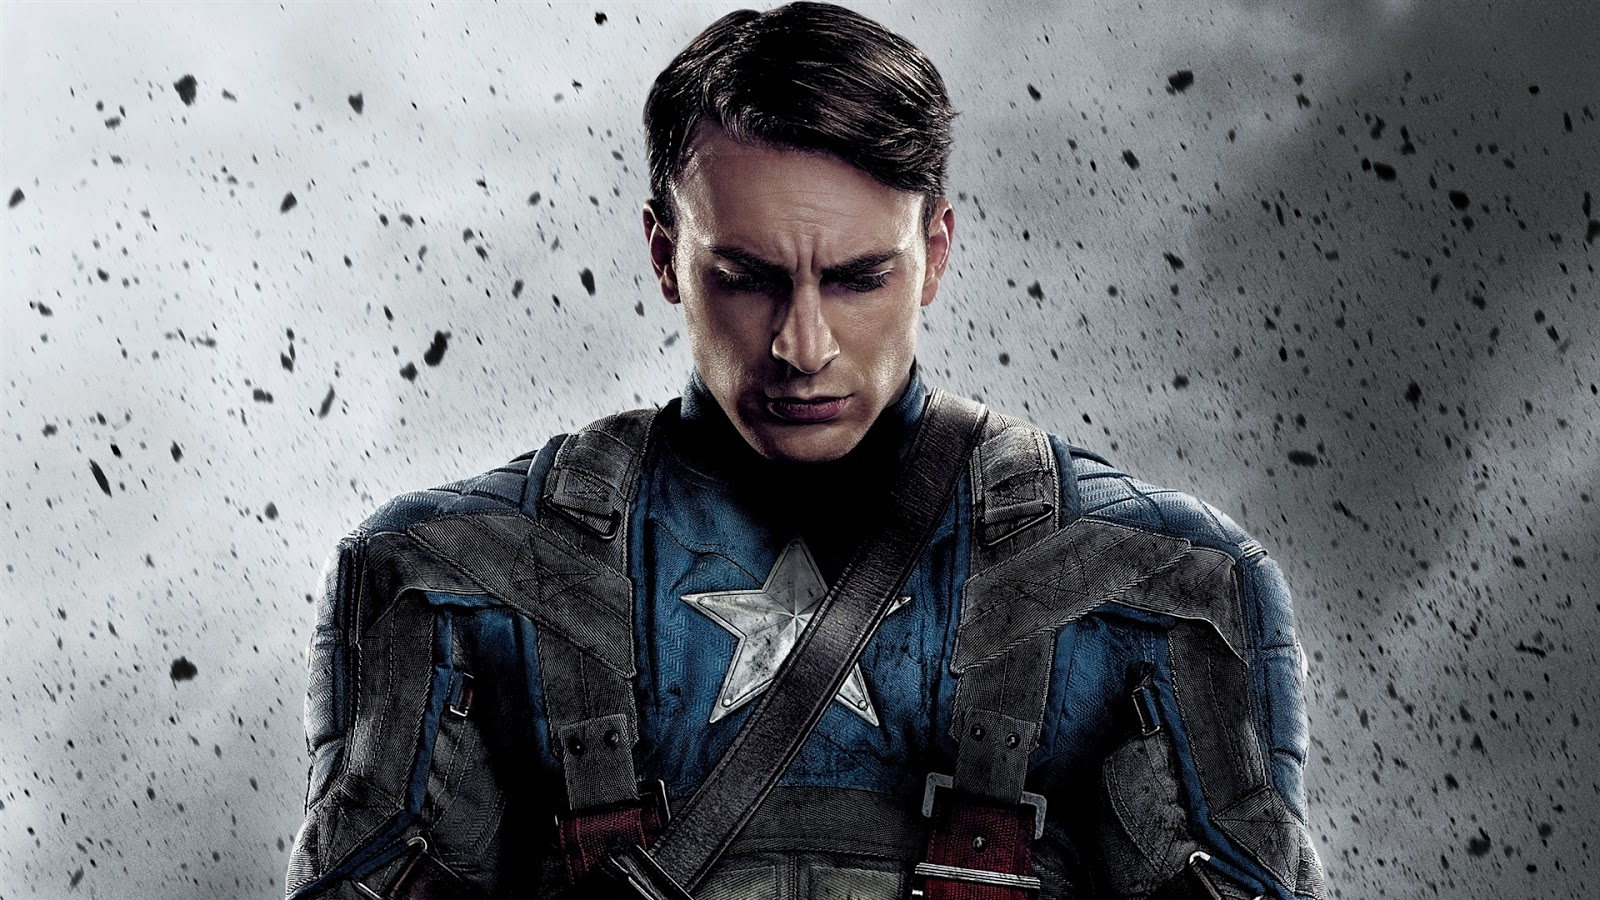 Captain America HD Wallpapers 1080p - WallpaperSafari